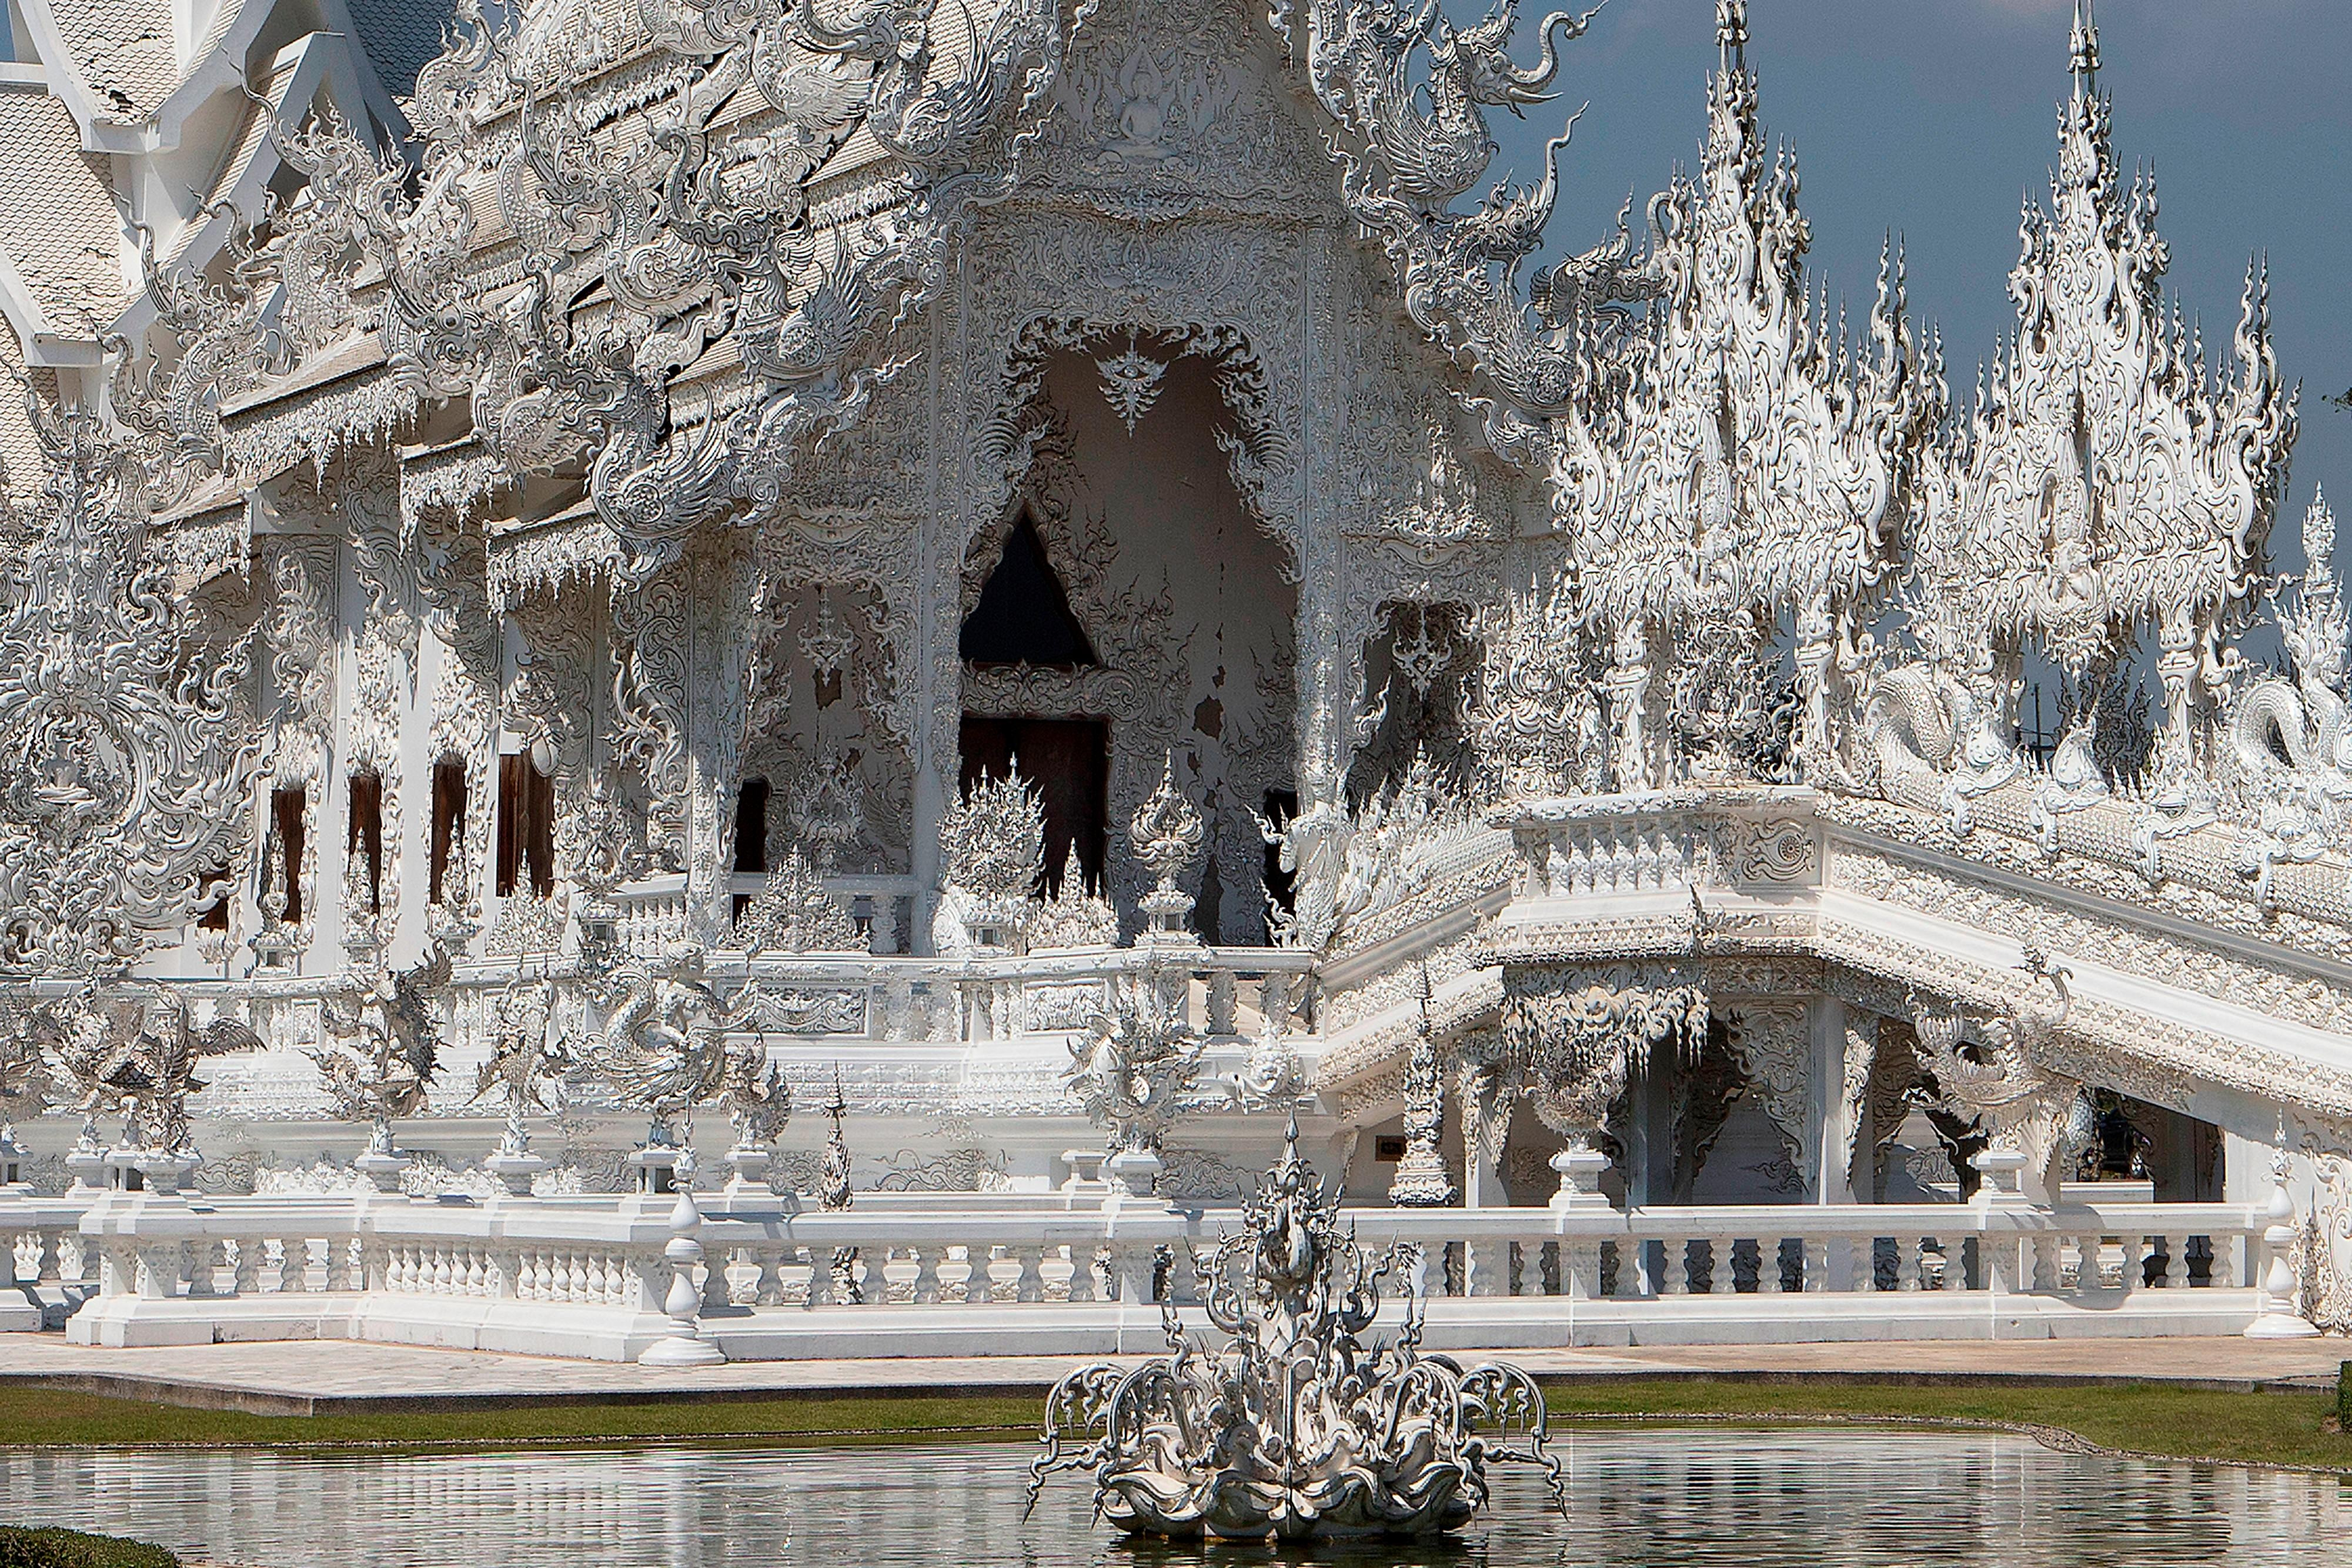 The White Temple (Wat Rongkhun)